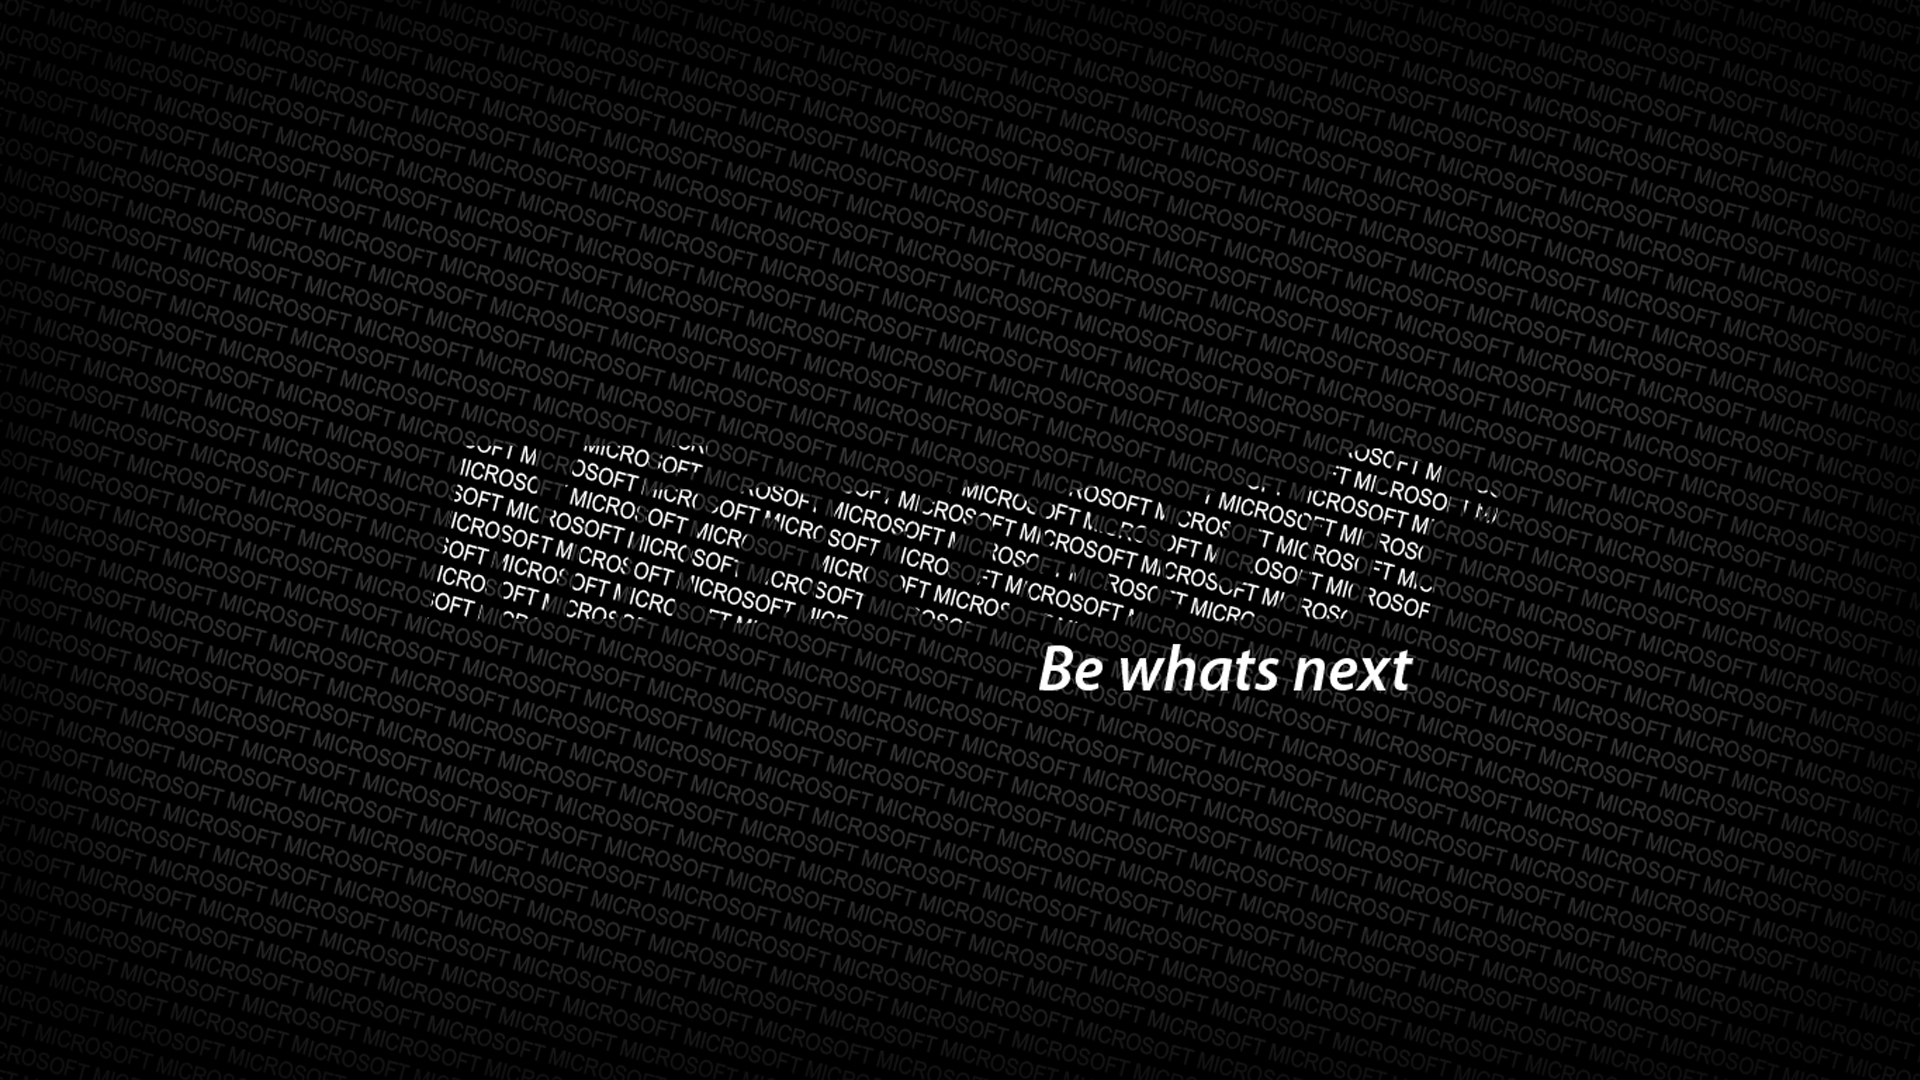 Microsoft Desktop Wallpaper Backgrounds 1920x1080